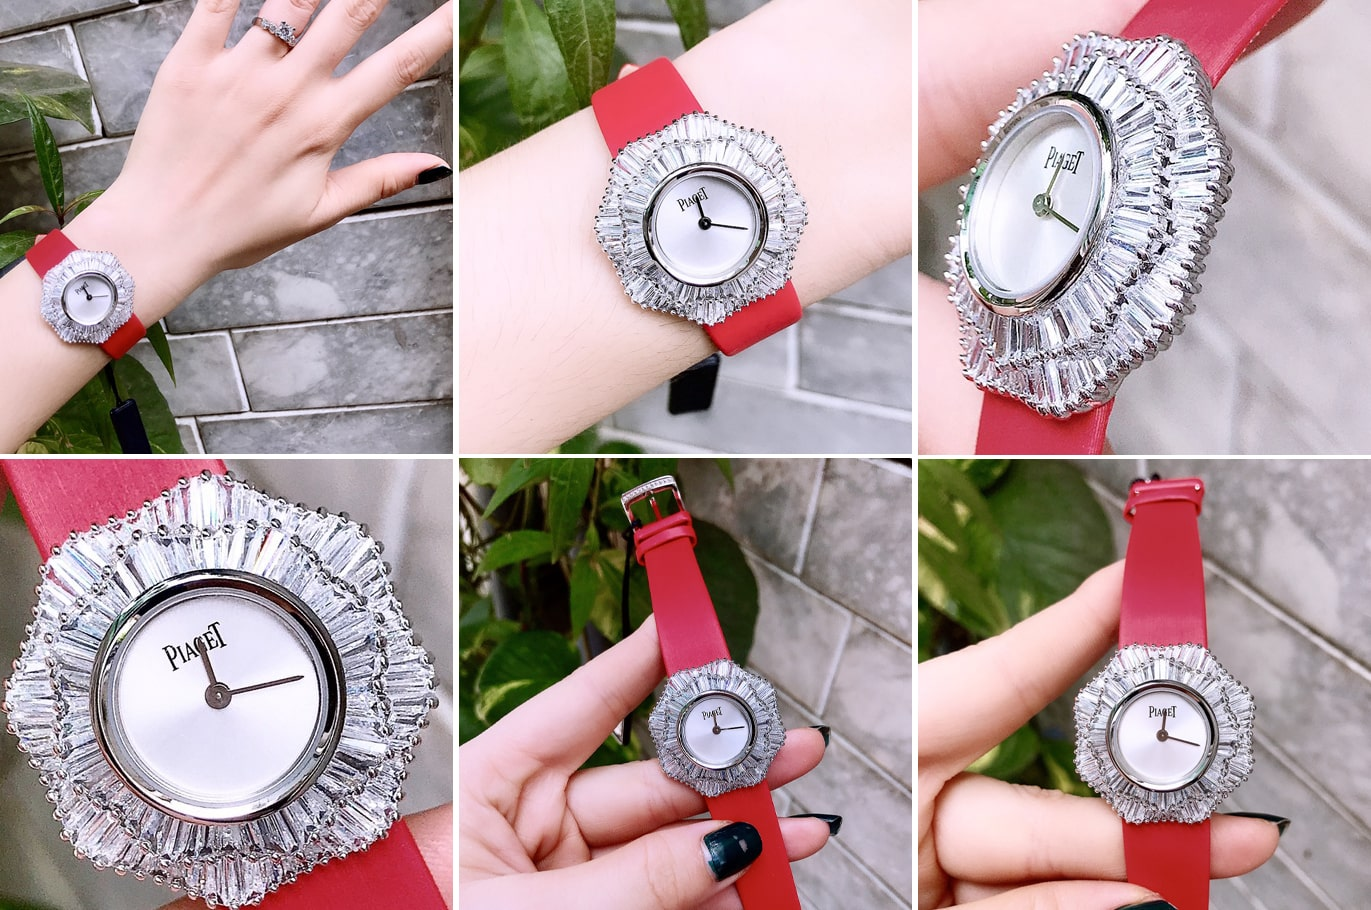 Dong-ho-Piaget-Limelight-ms-395200